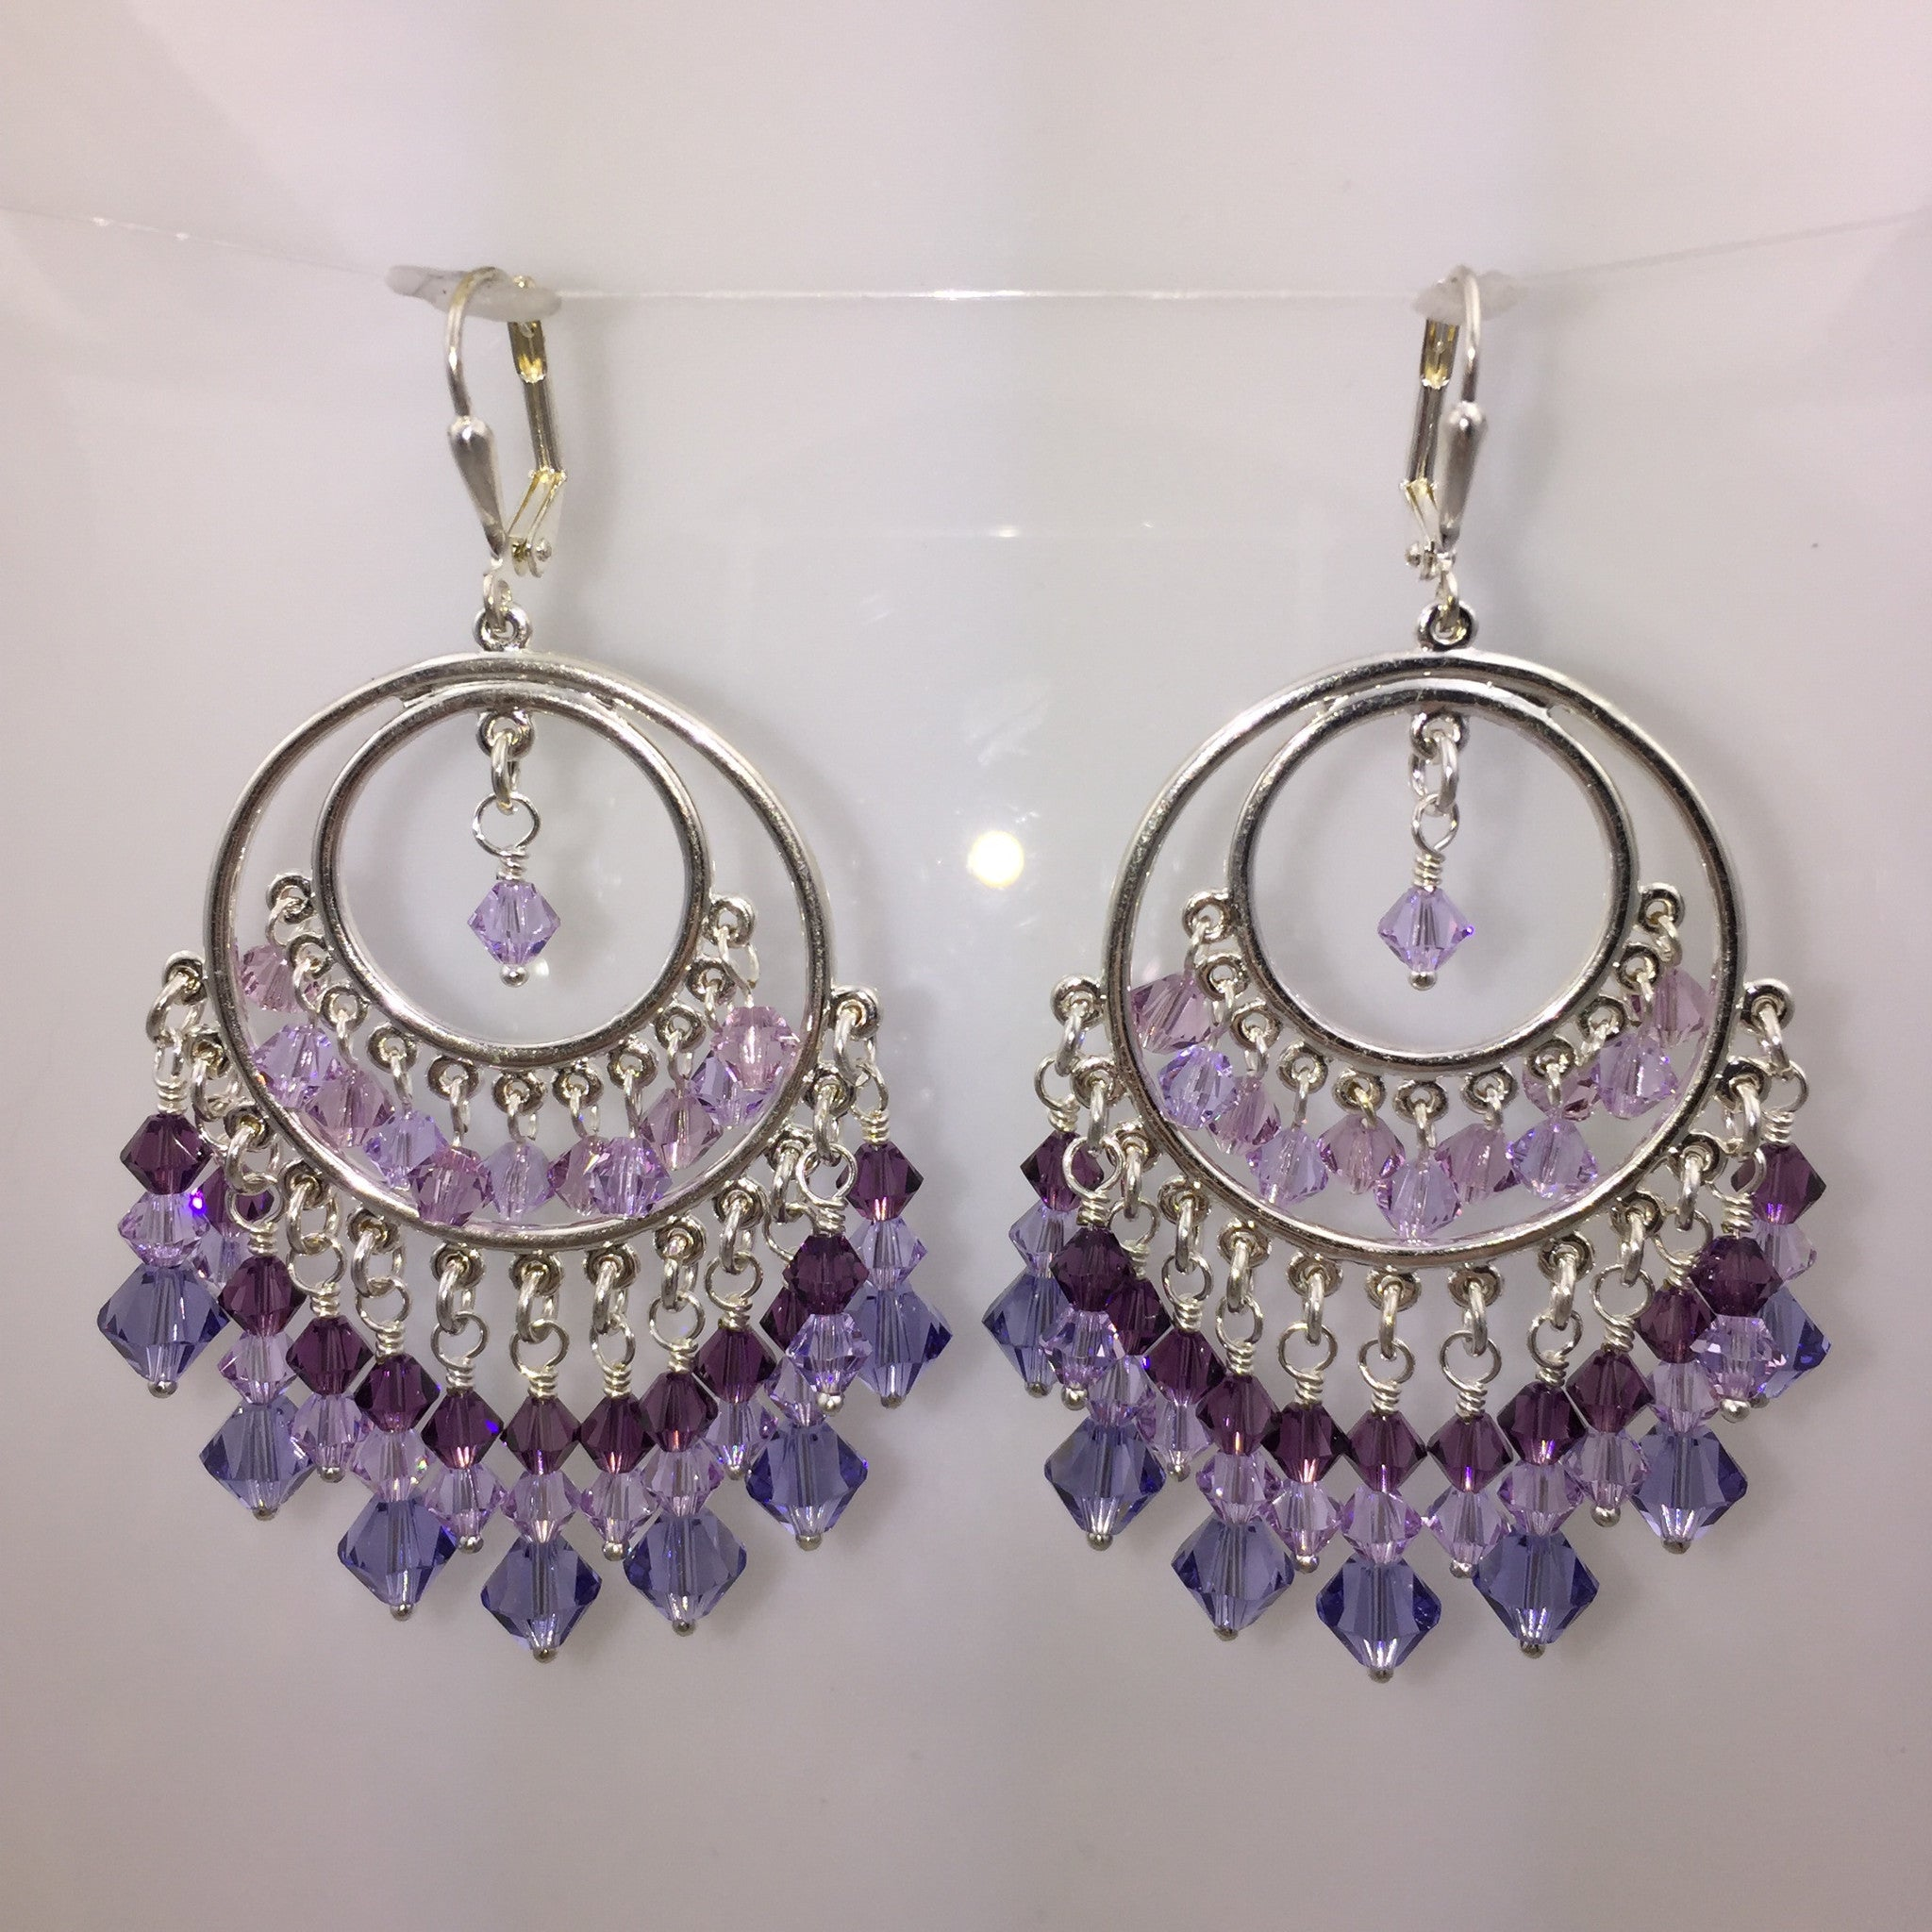 Double Loop Crystal Earrings